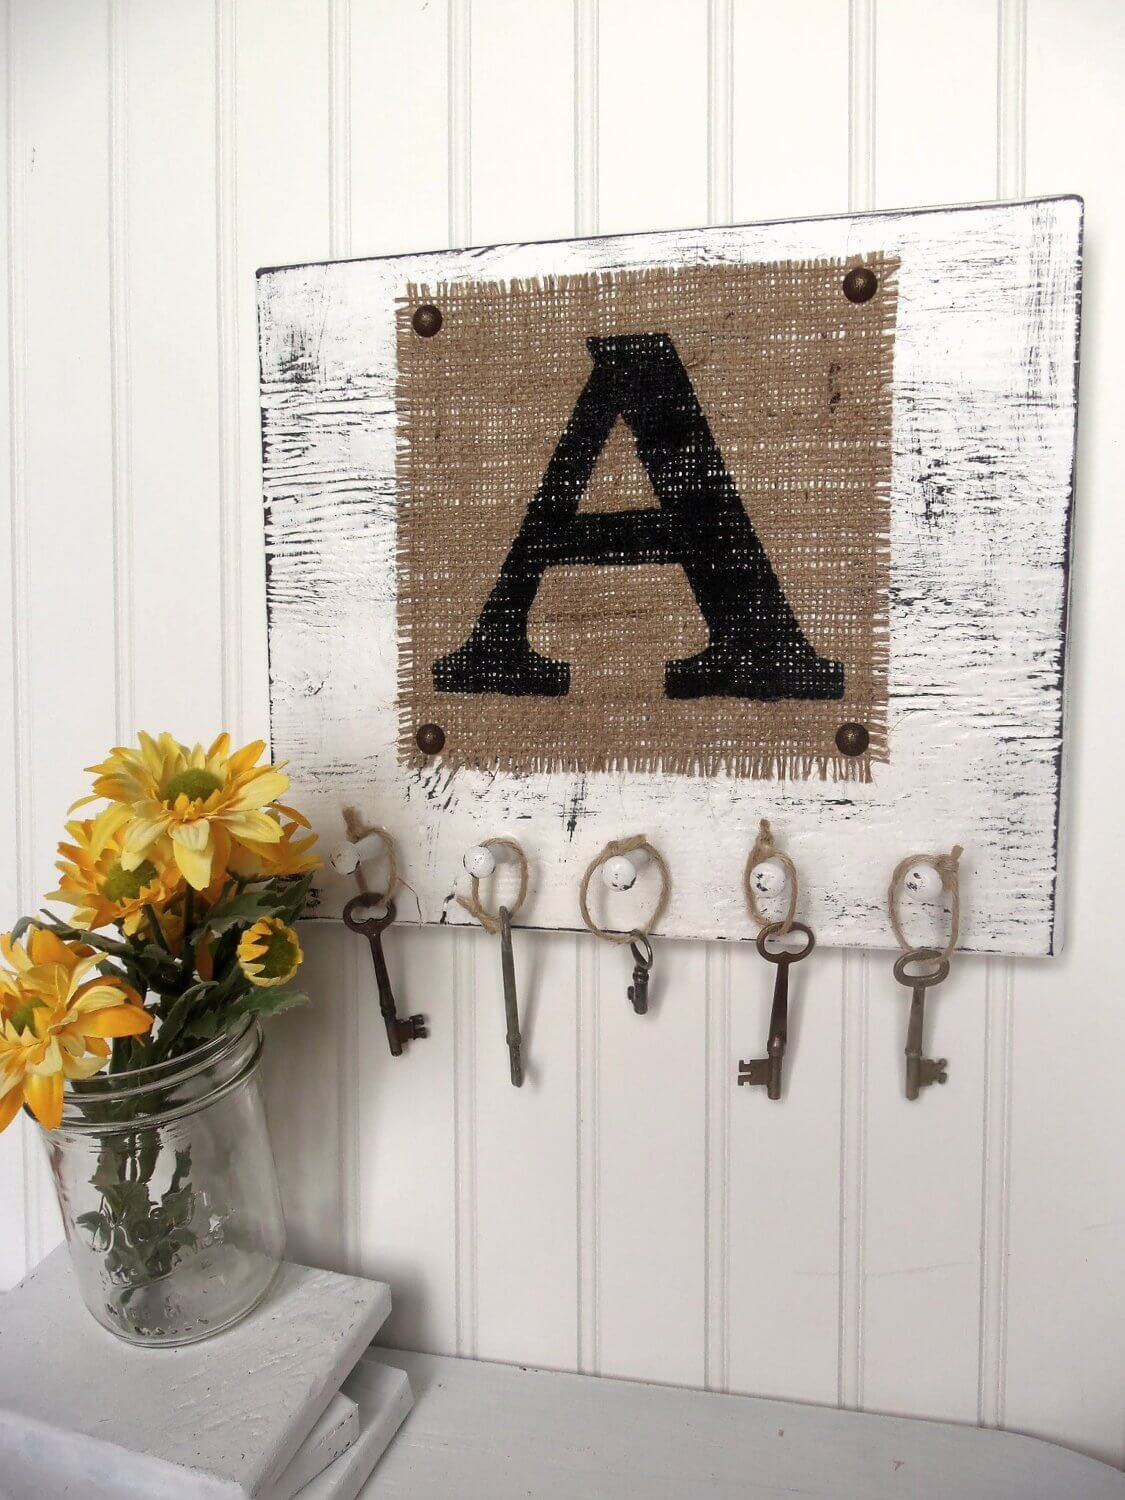 Burlap and Wood Monogrammed Key Rack